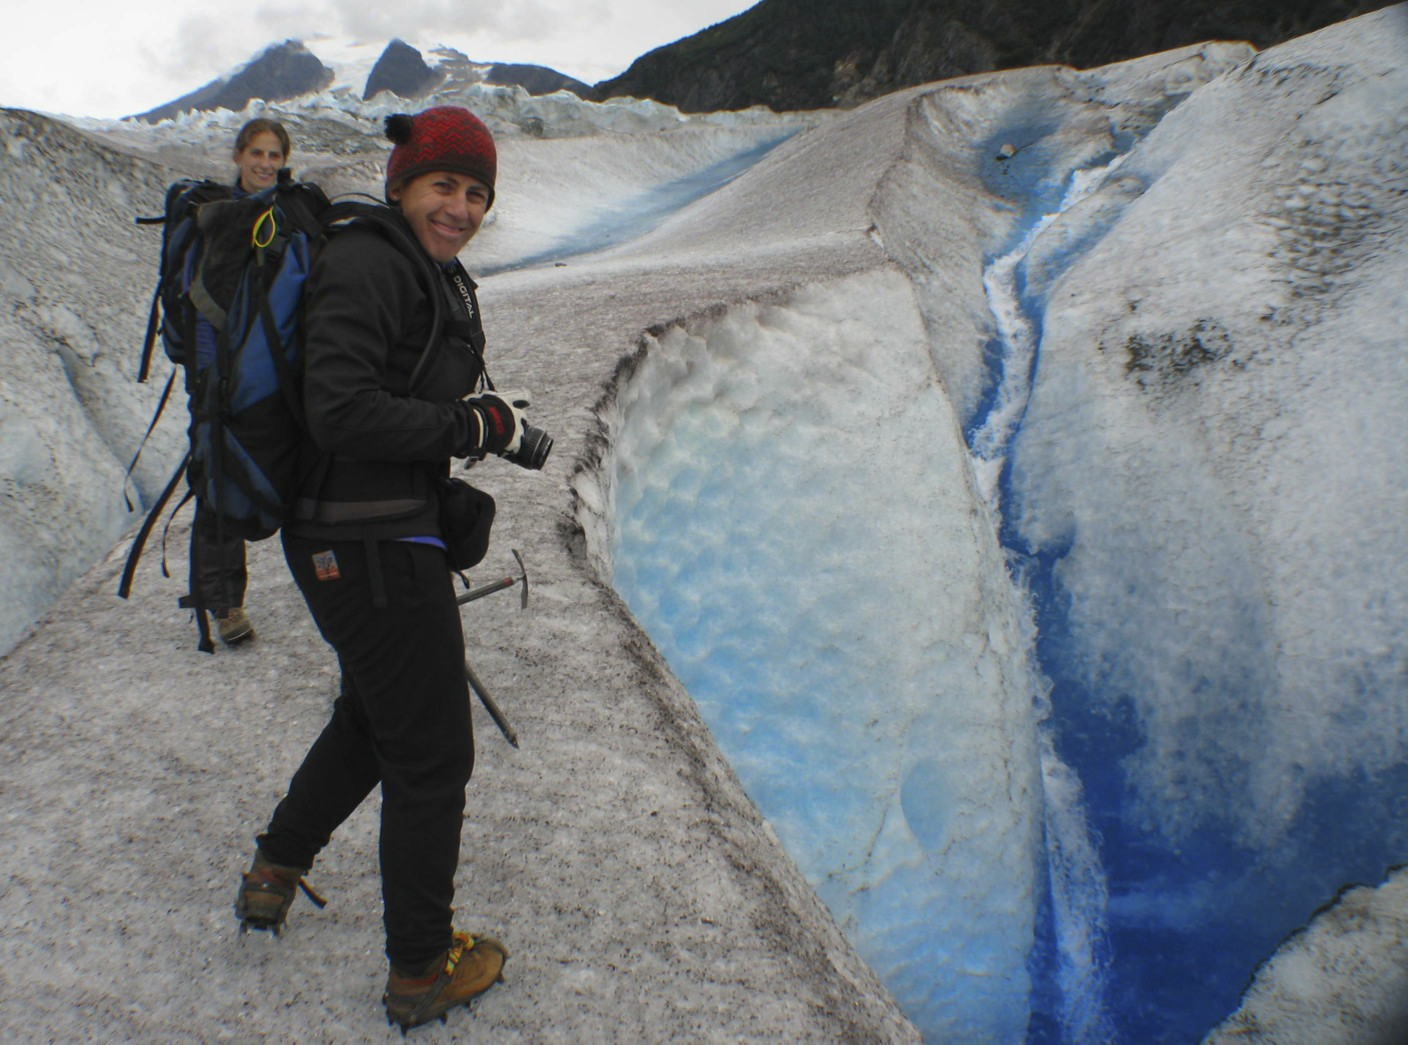 Lori on the Mendenhall Glacier, Alaska